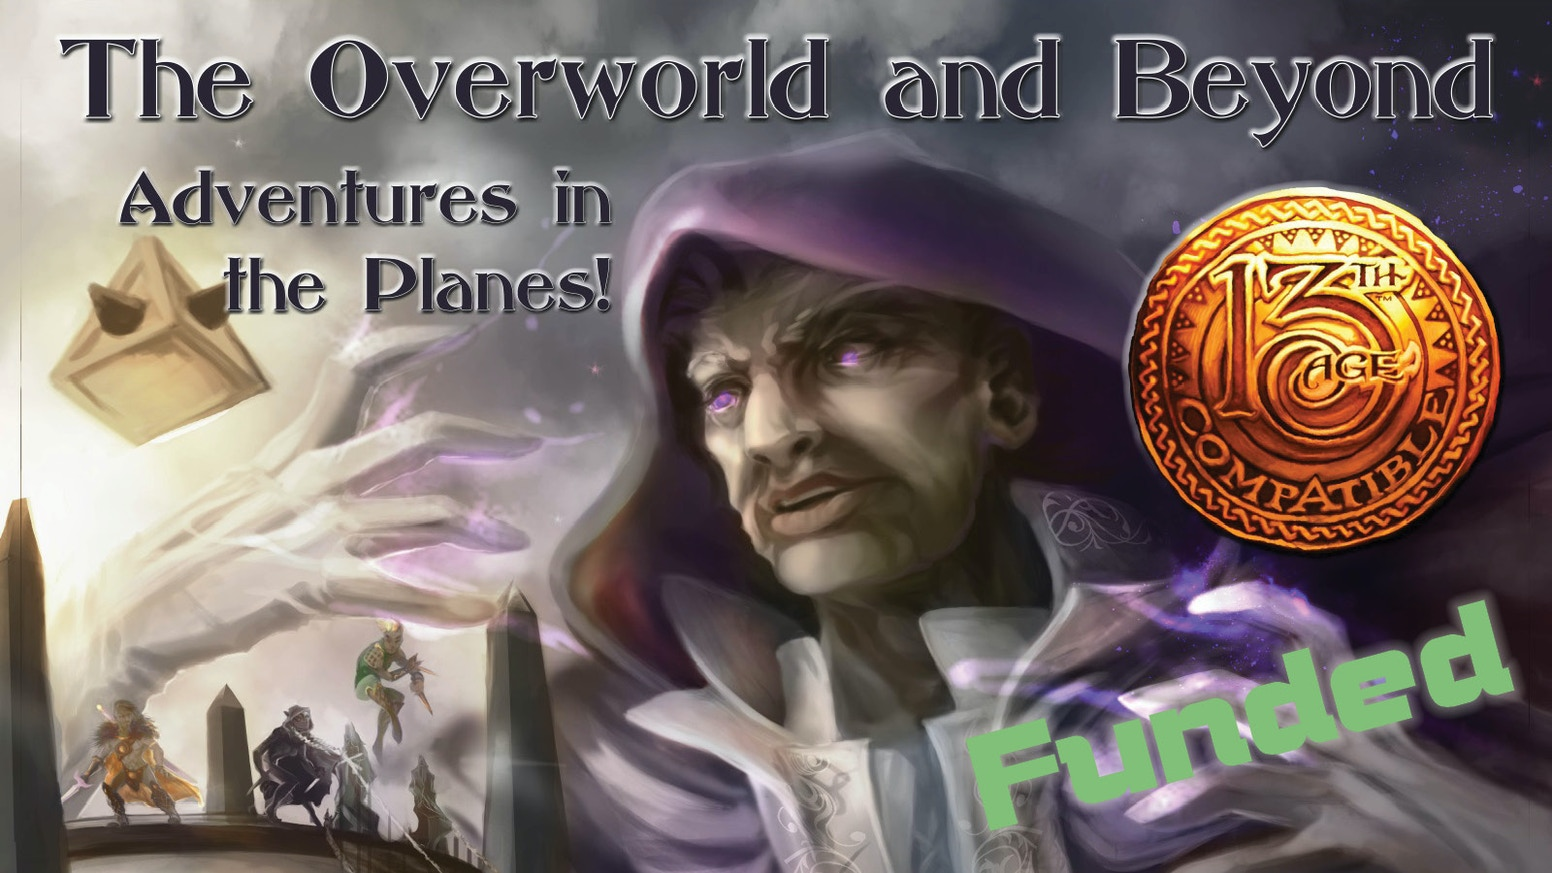 The Overworld and Beyond, planar adventures for the 13th Age Roleplaying Game by the legendary Ash Law. Available now.